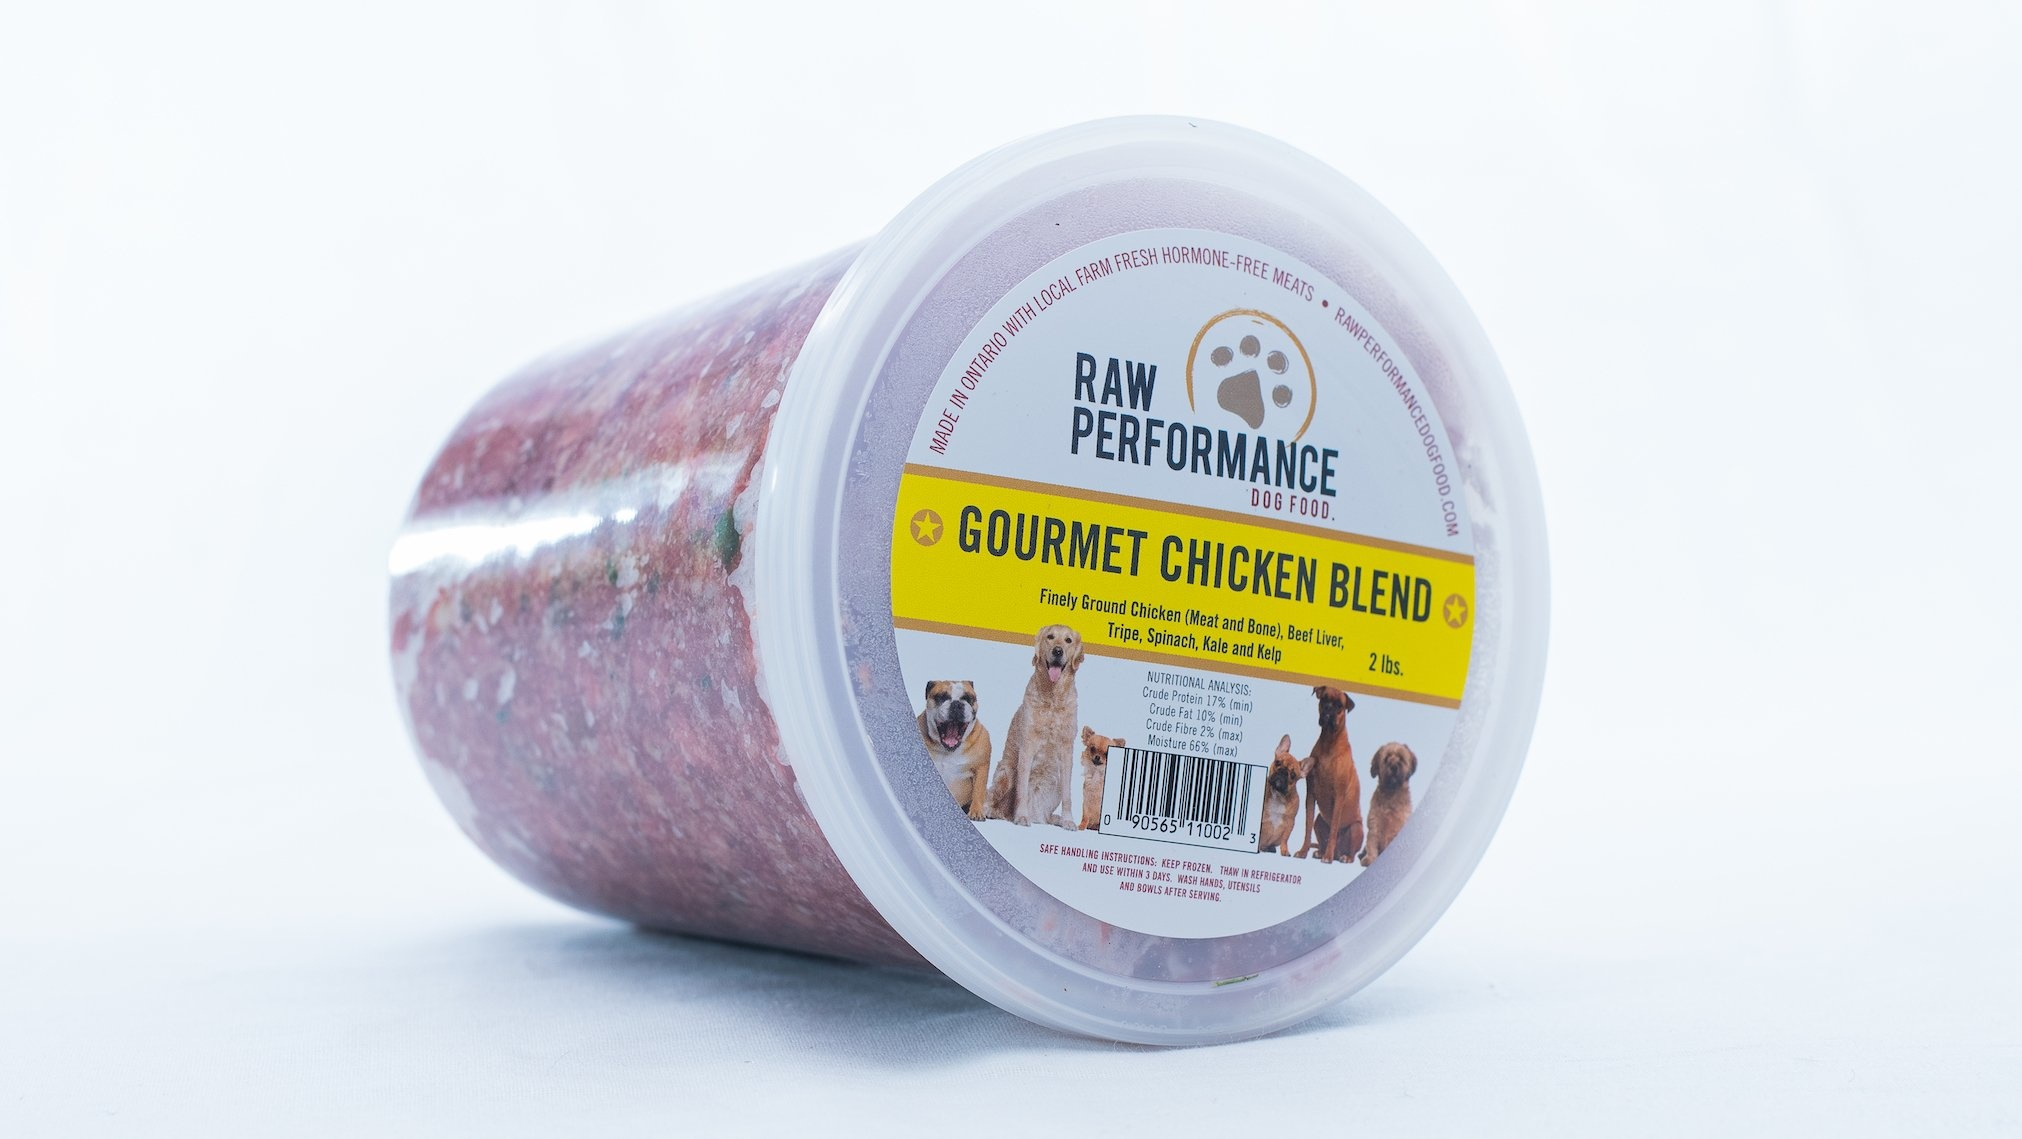 Raw Performance Raw Performance - Gourmet Chicken Blend 2lb